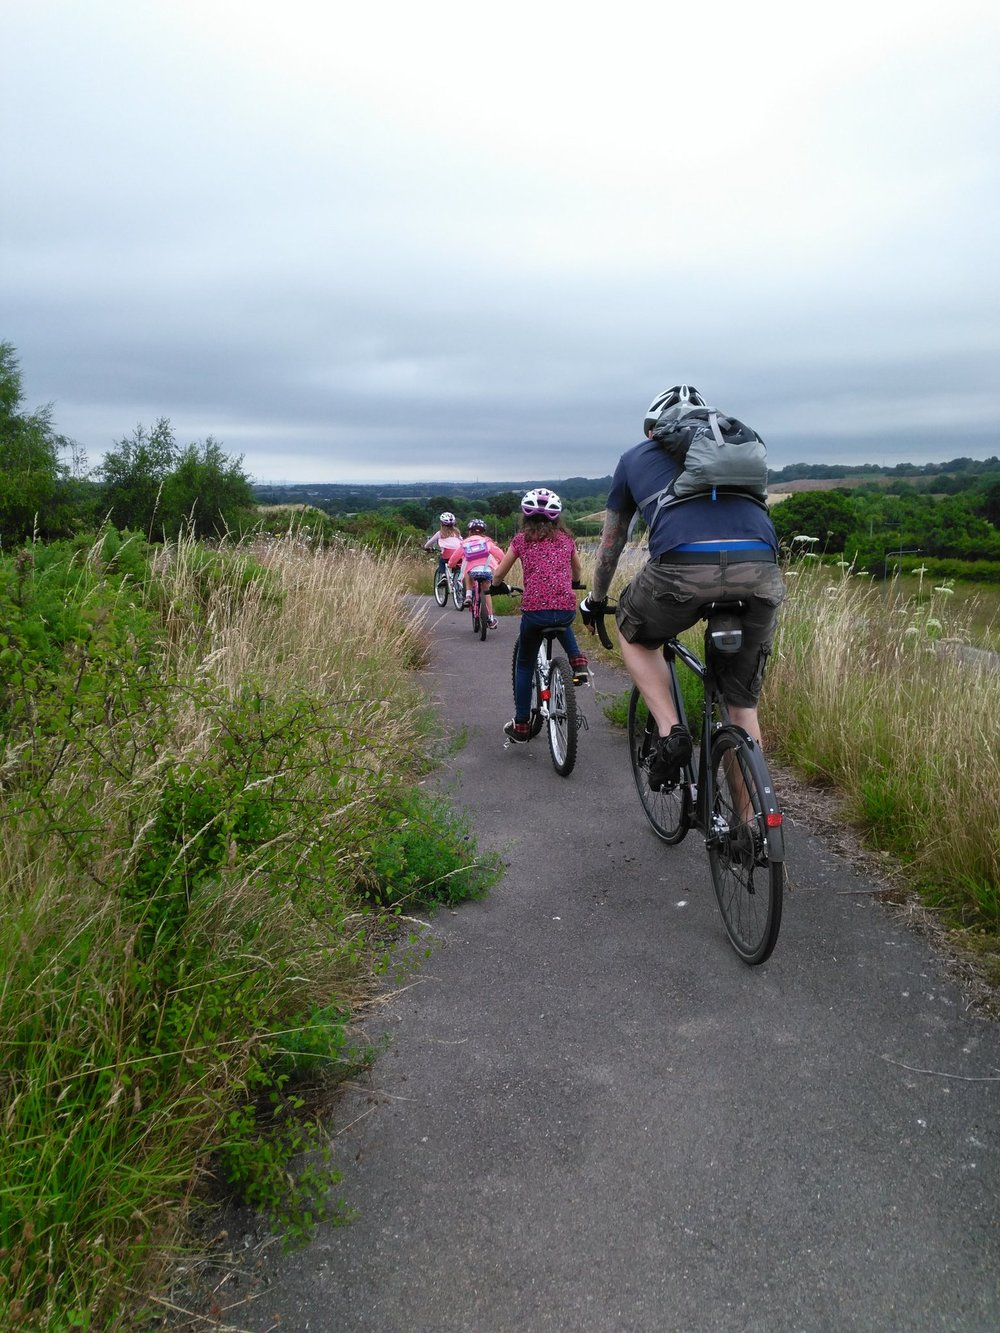 A cycling adventure with the Stone family